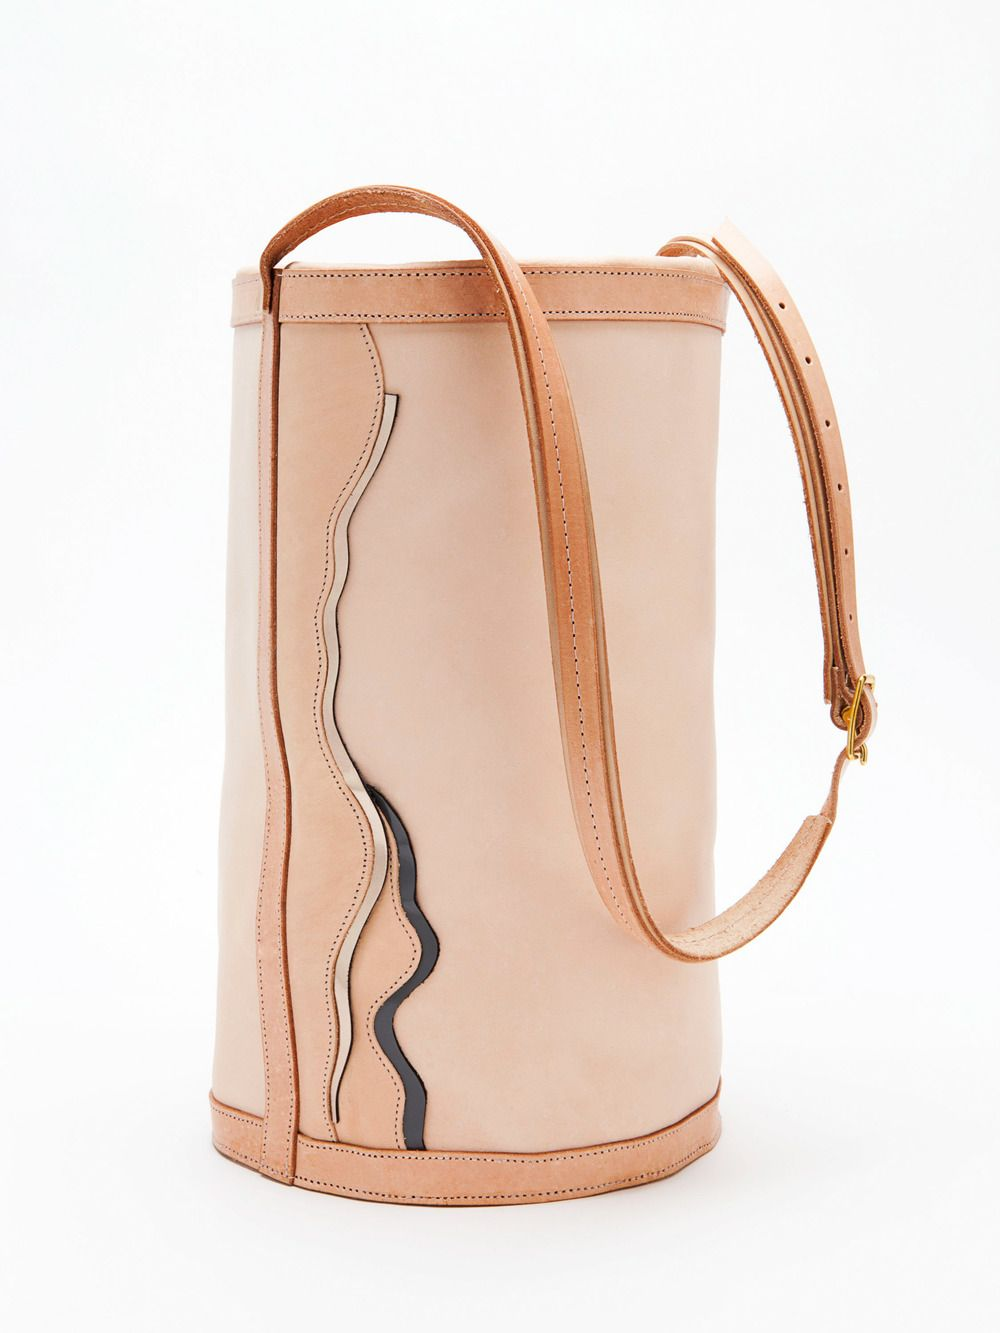 Limited Edition Bucket bag with pewter patent and slate grey colored waves  side detailing, draw-string leather top closure and adjustable long handle.  Solid brass hardware. Leather is a slightly rigid natural veggie-tan  leather that will maintain shape will giving out slightly at the base.